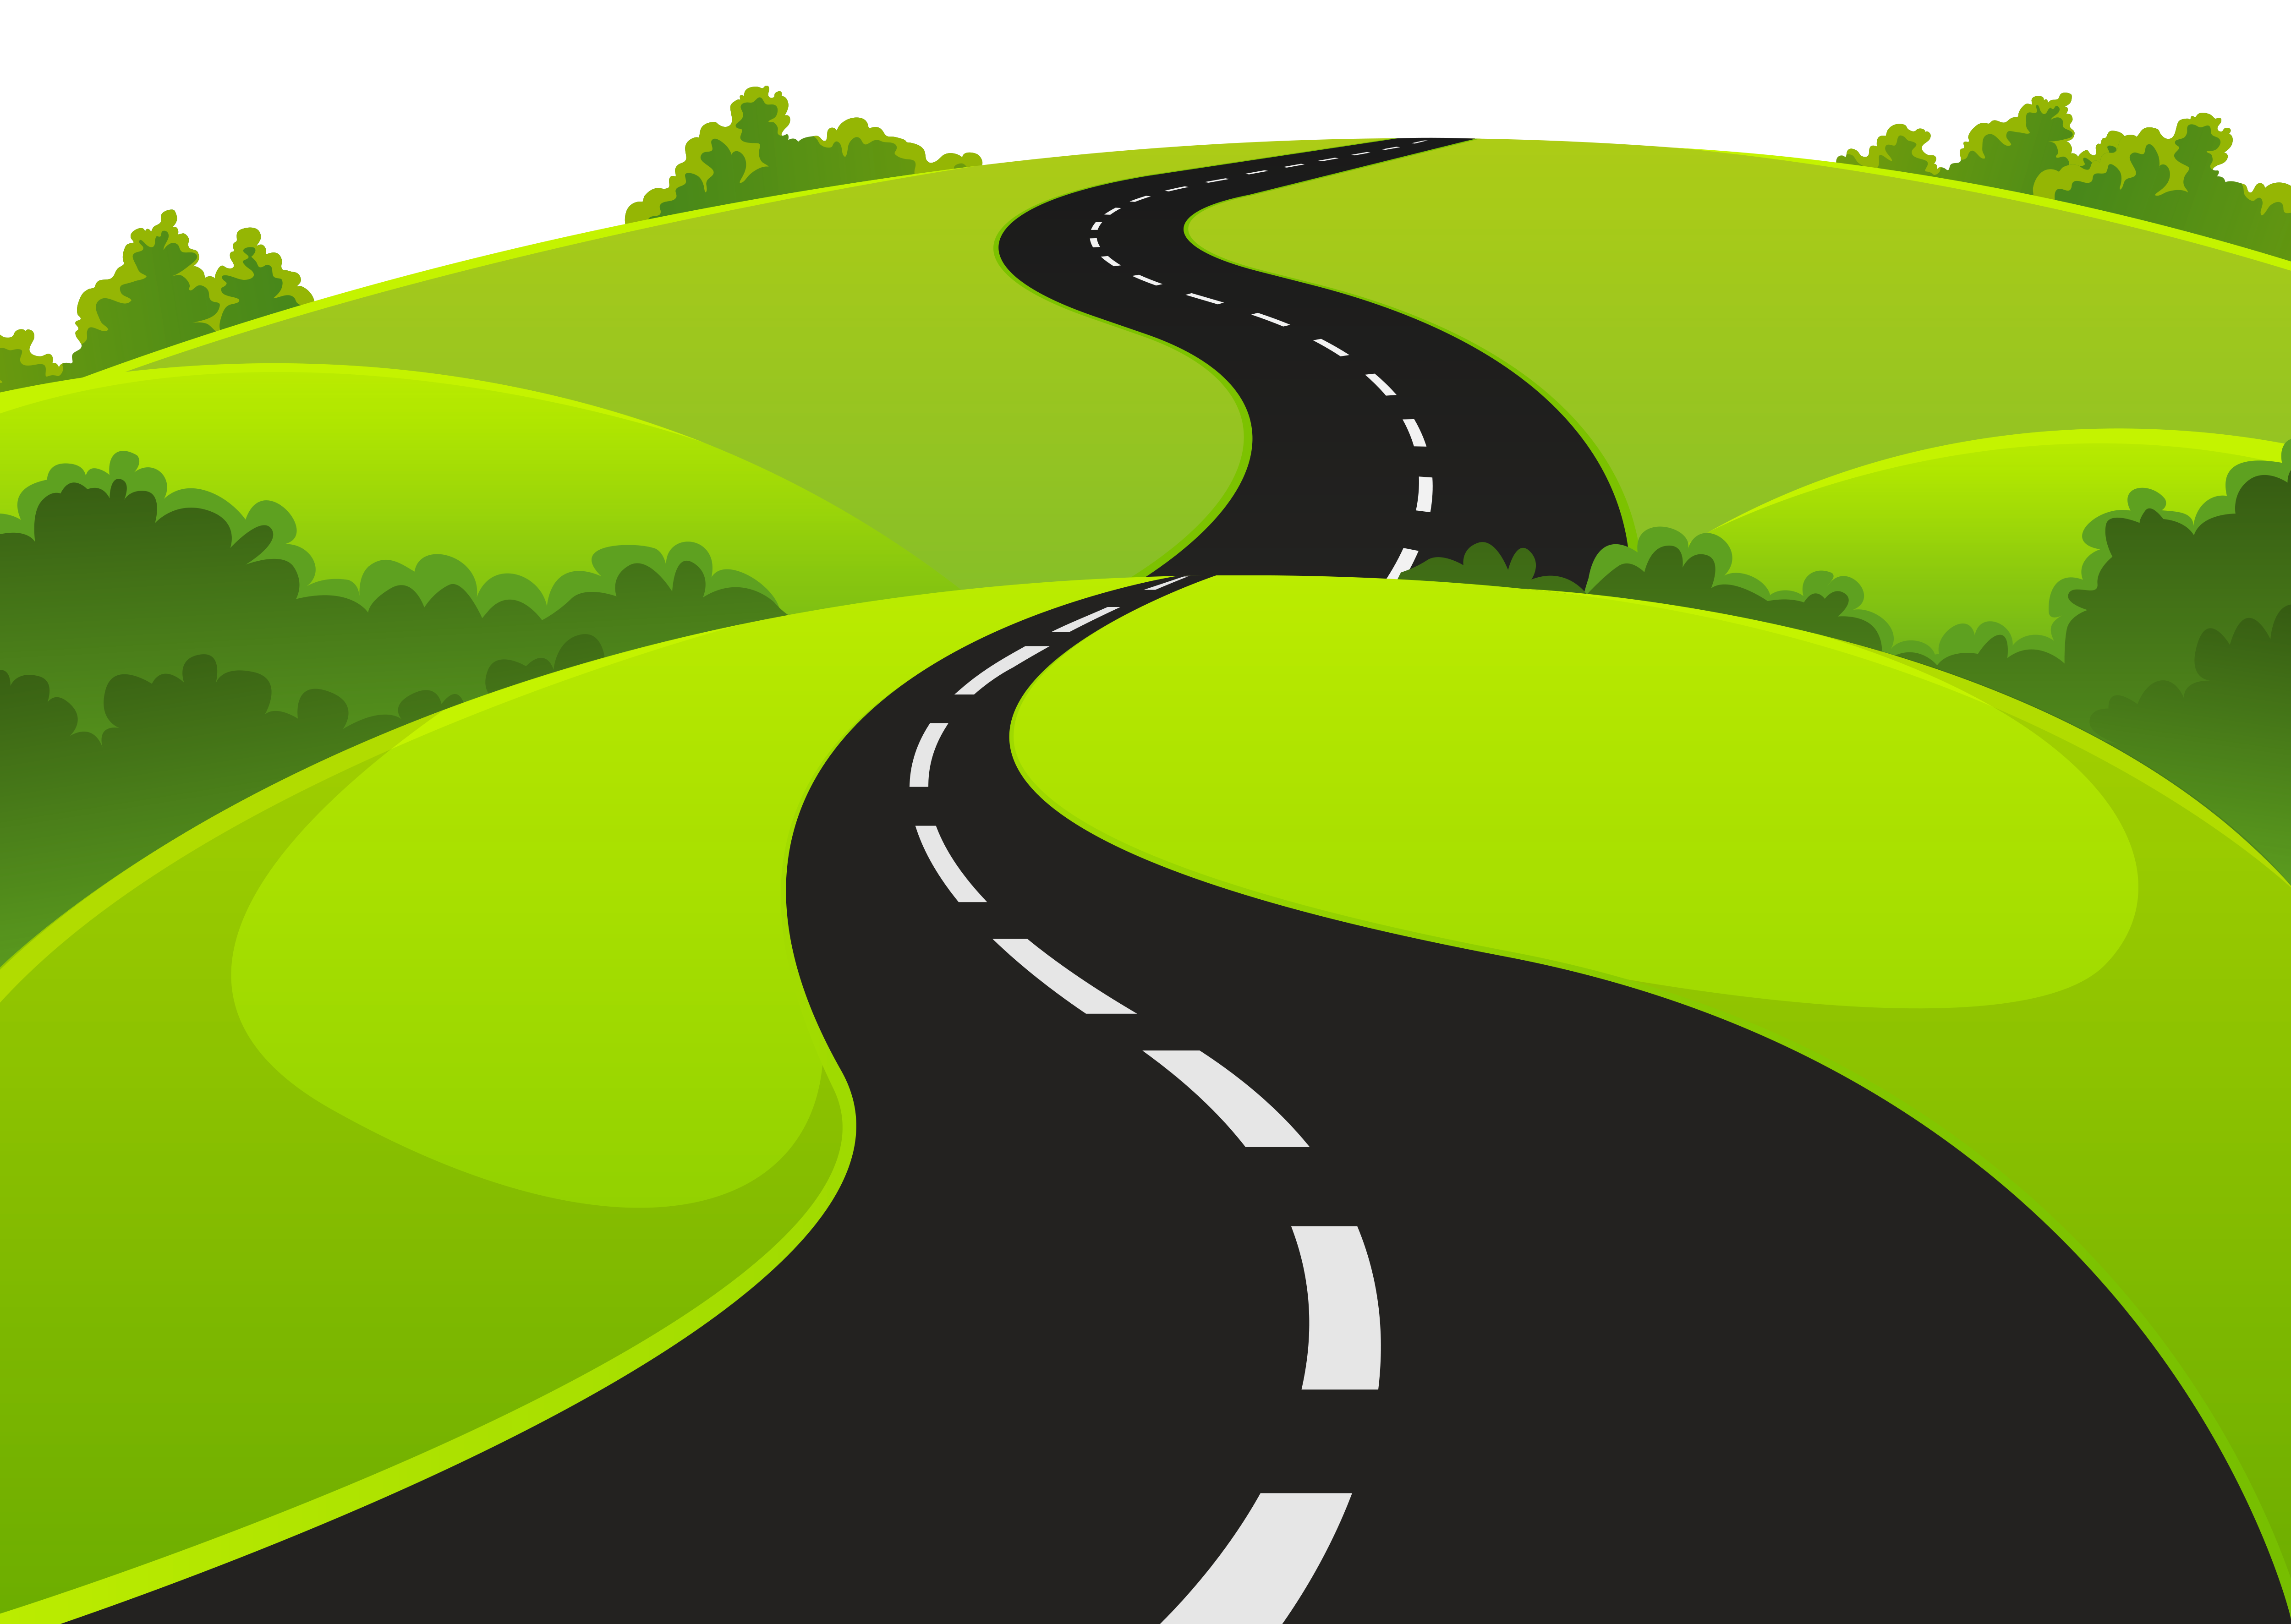 Road clipart. And grass png picture image transparent library